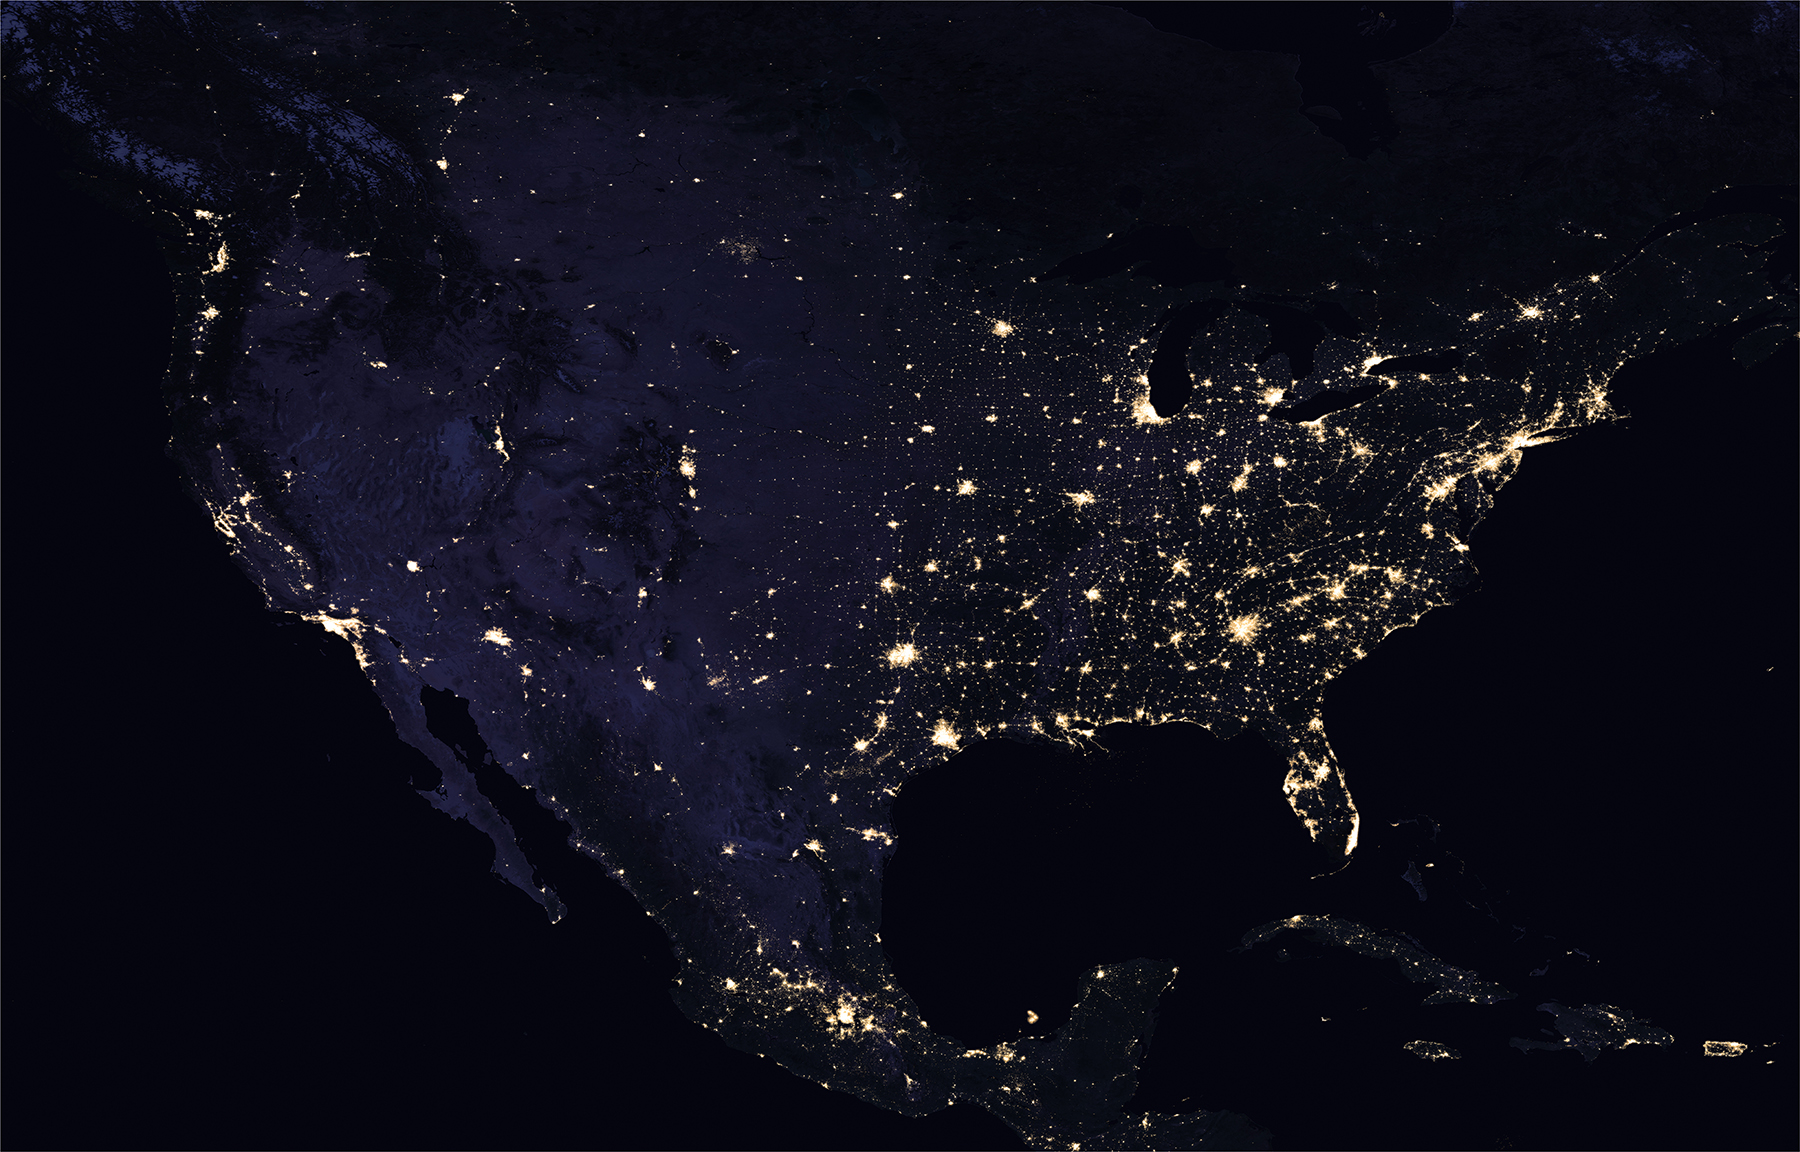 nasa earth data - photo #27